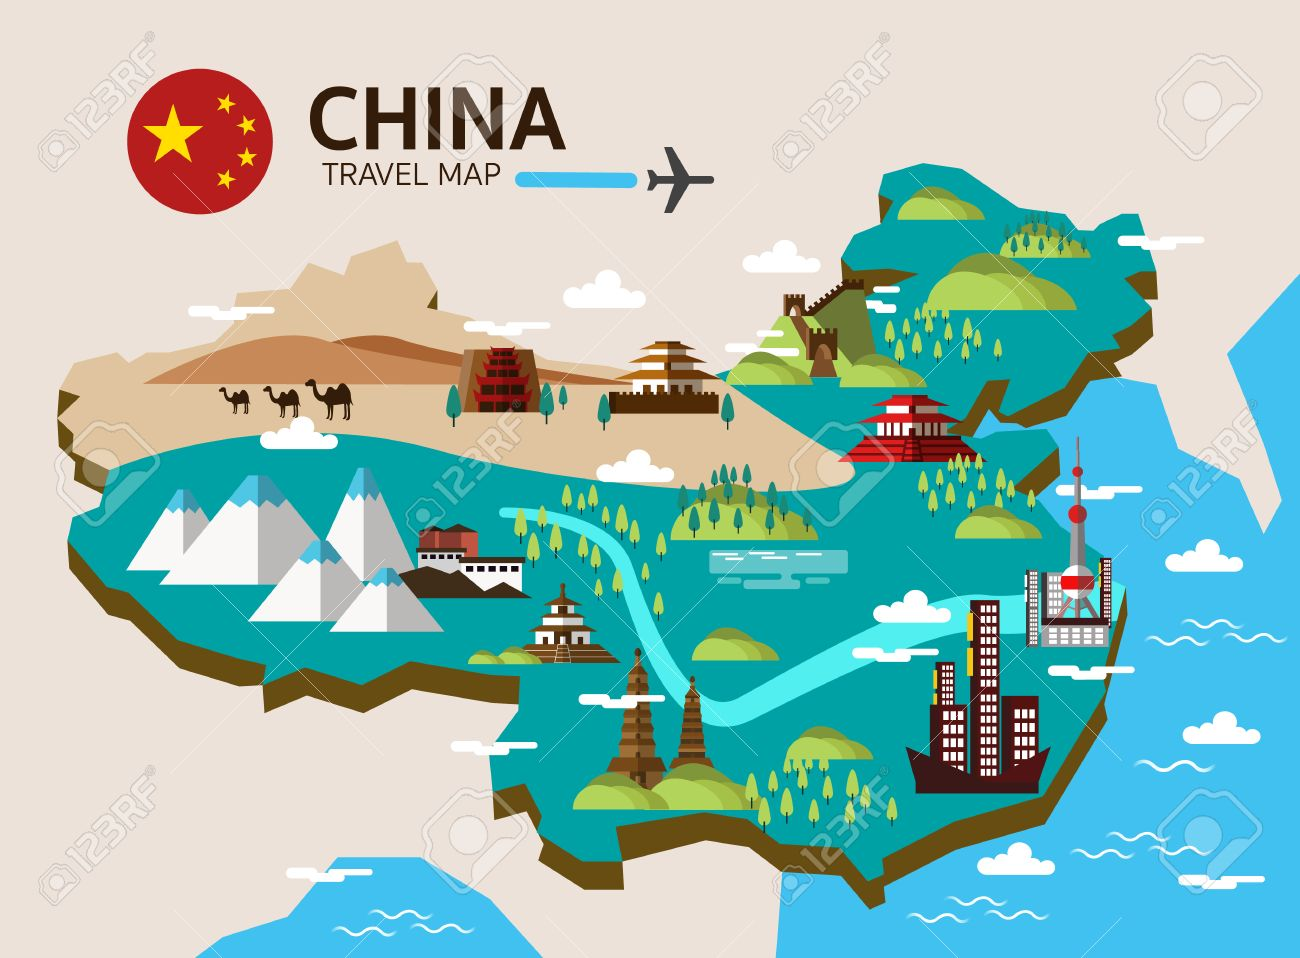 China landmark and travel map. Flat design elements and icons. vector illustration - 46099041